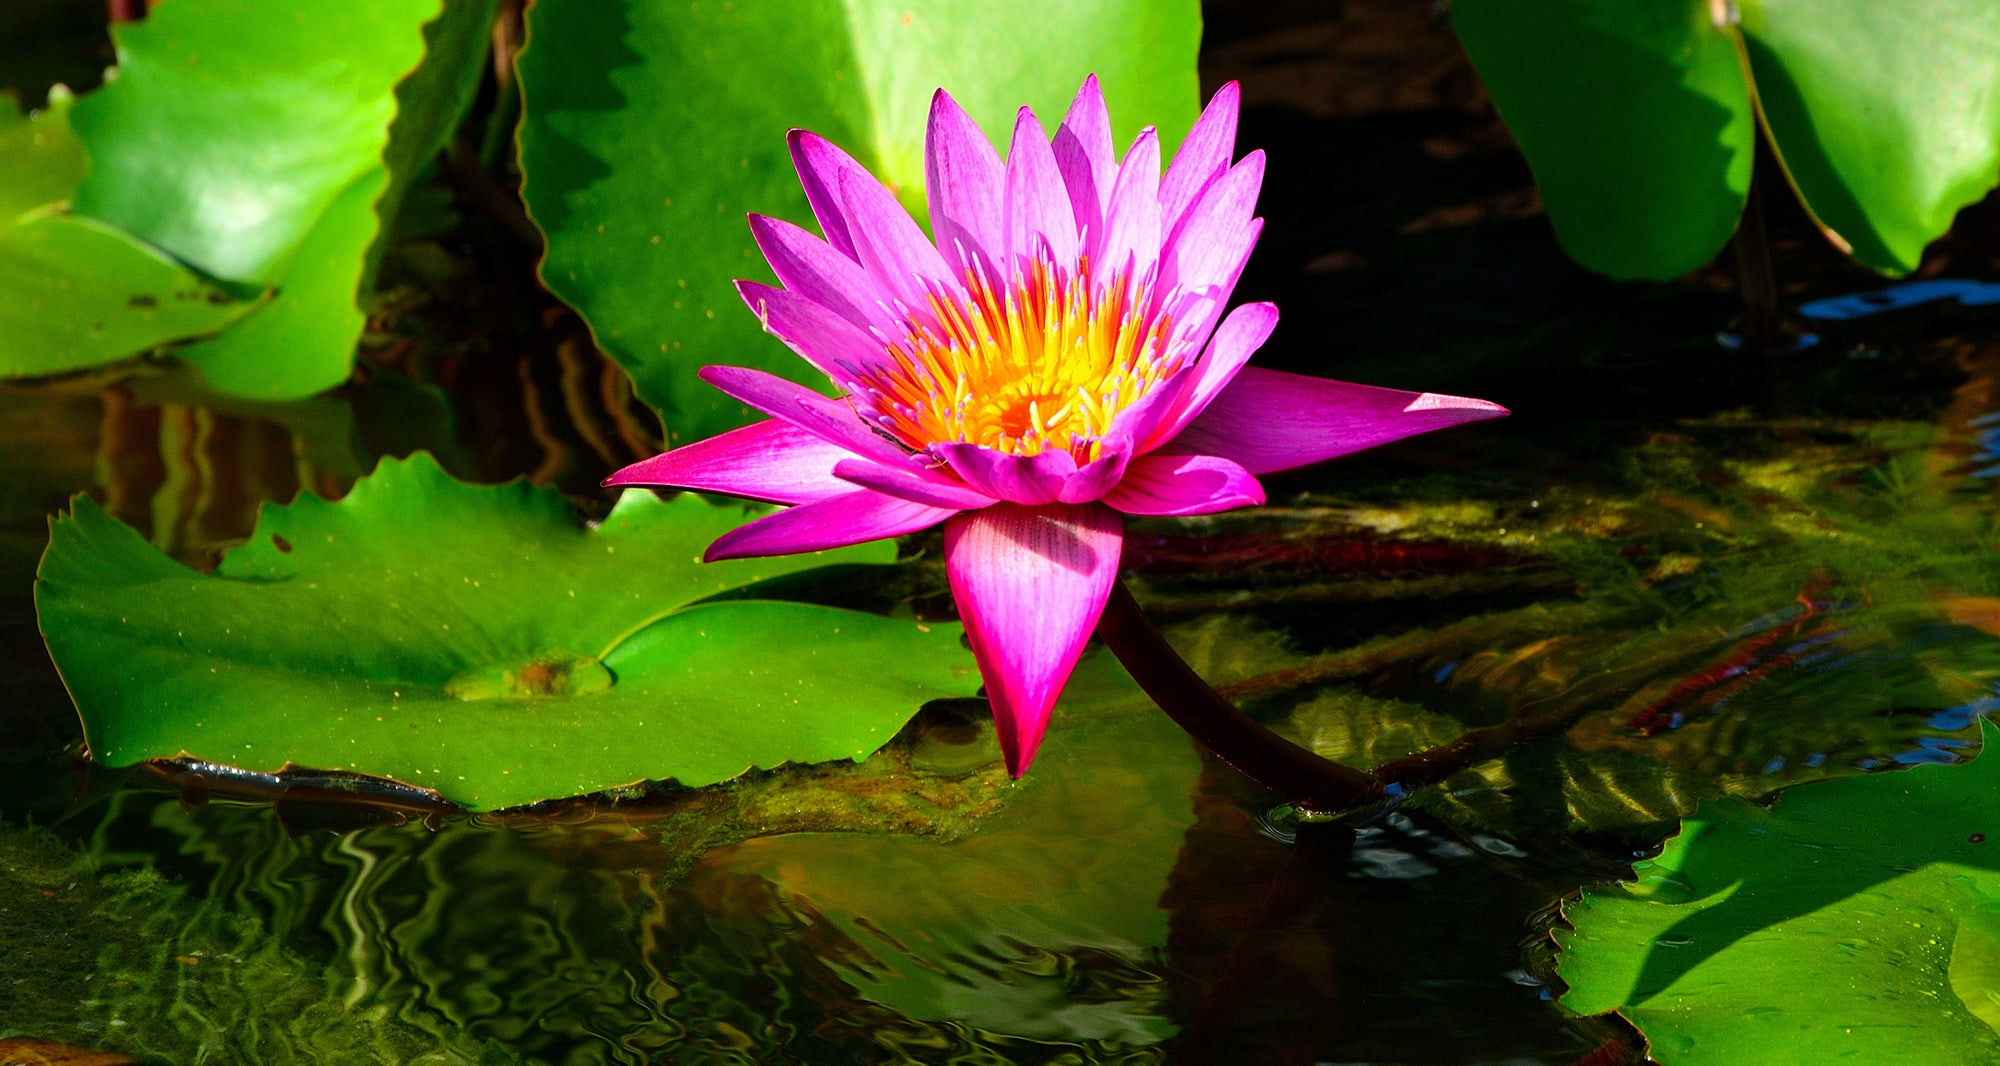 Growing Waterlilies - Top tips from the experts